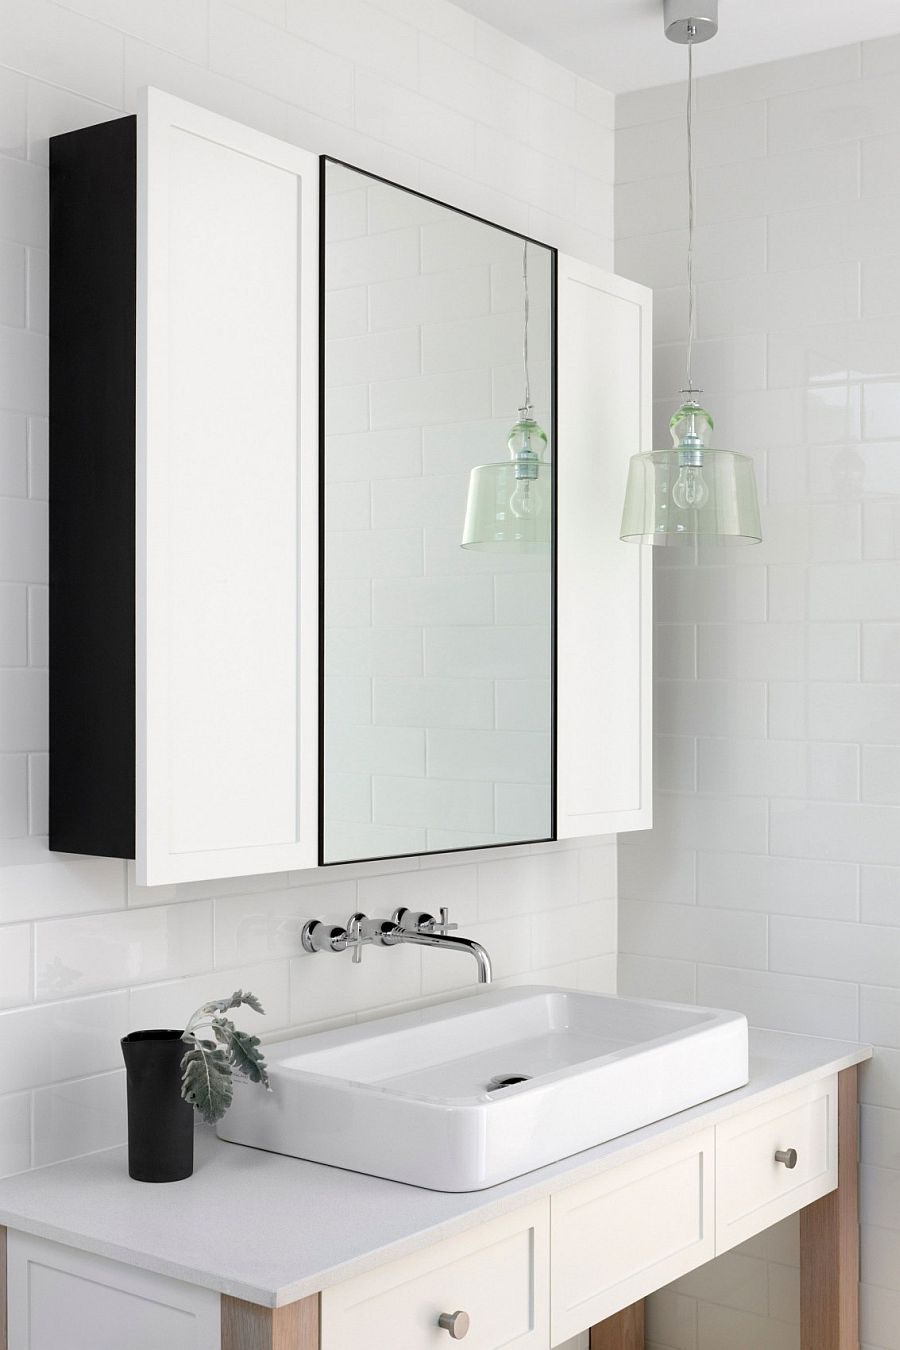 White vanity and medicine cabinet of the becah style bathroom with a hint of black